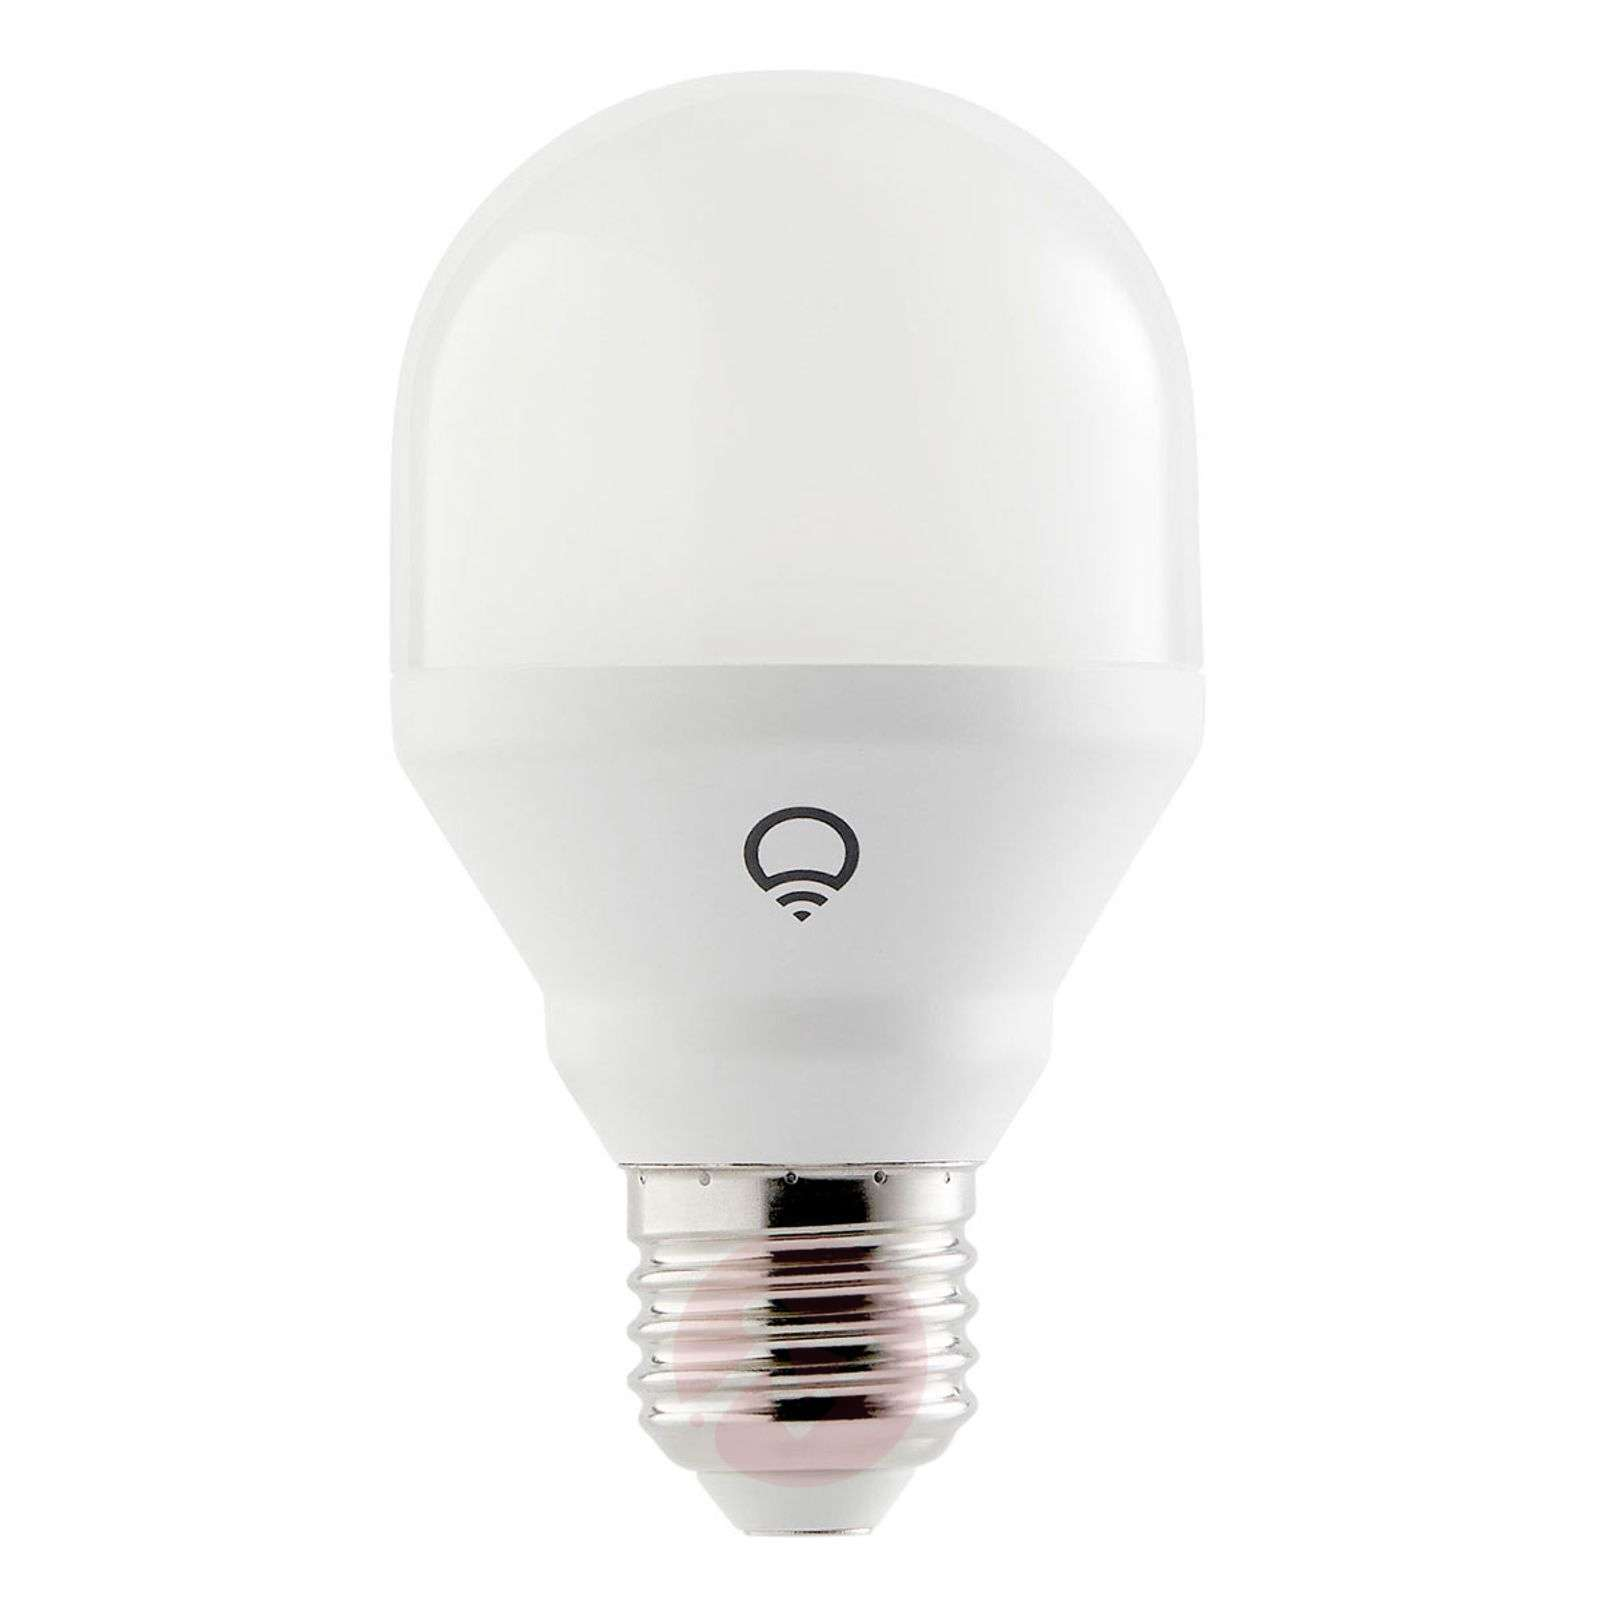 LIFX Mini Color ampoule LED E27 9W 2500-9000K RVB-6104003-02